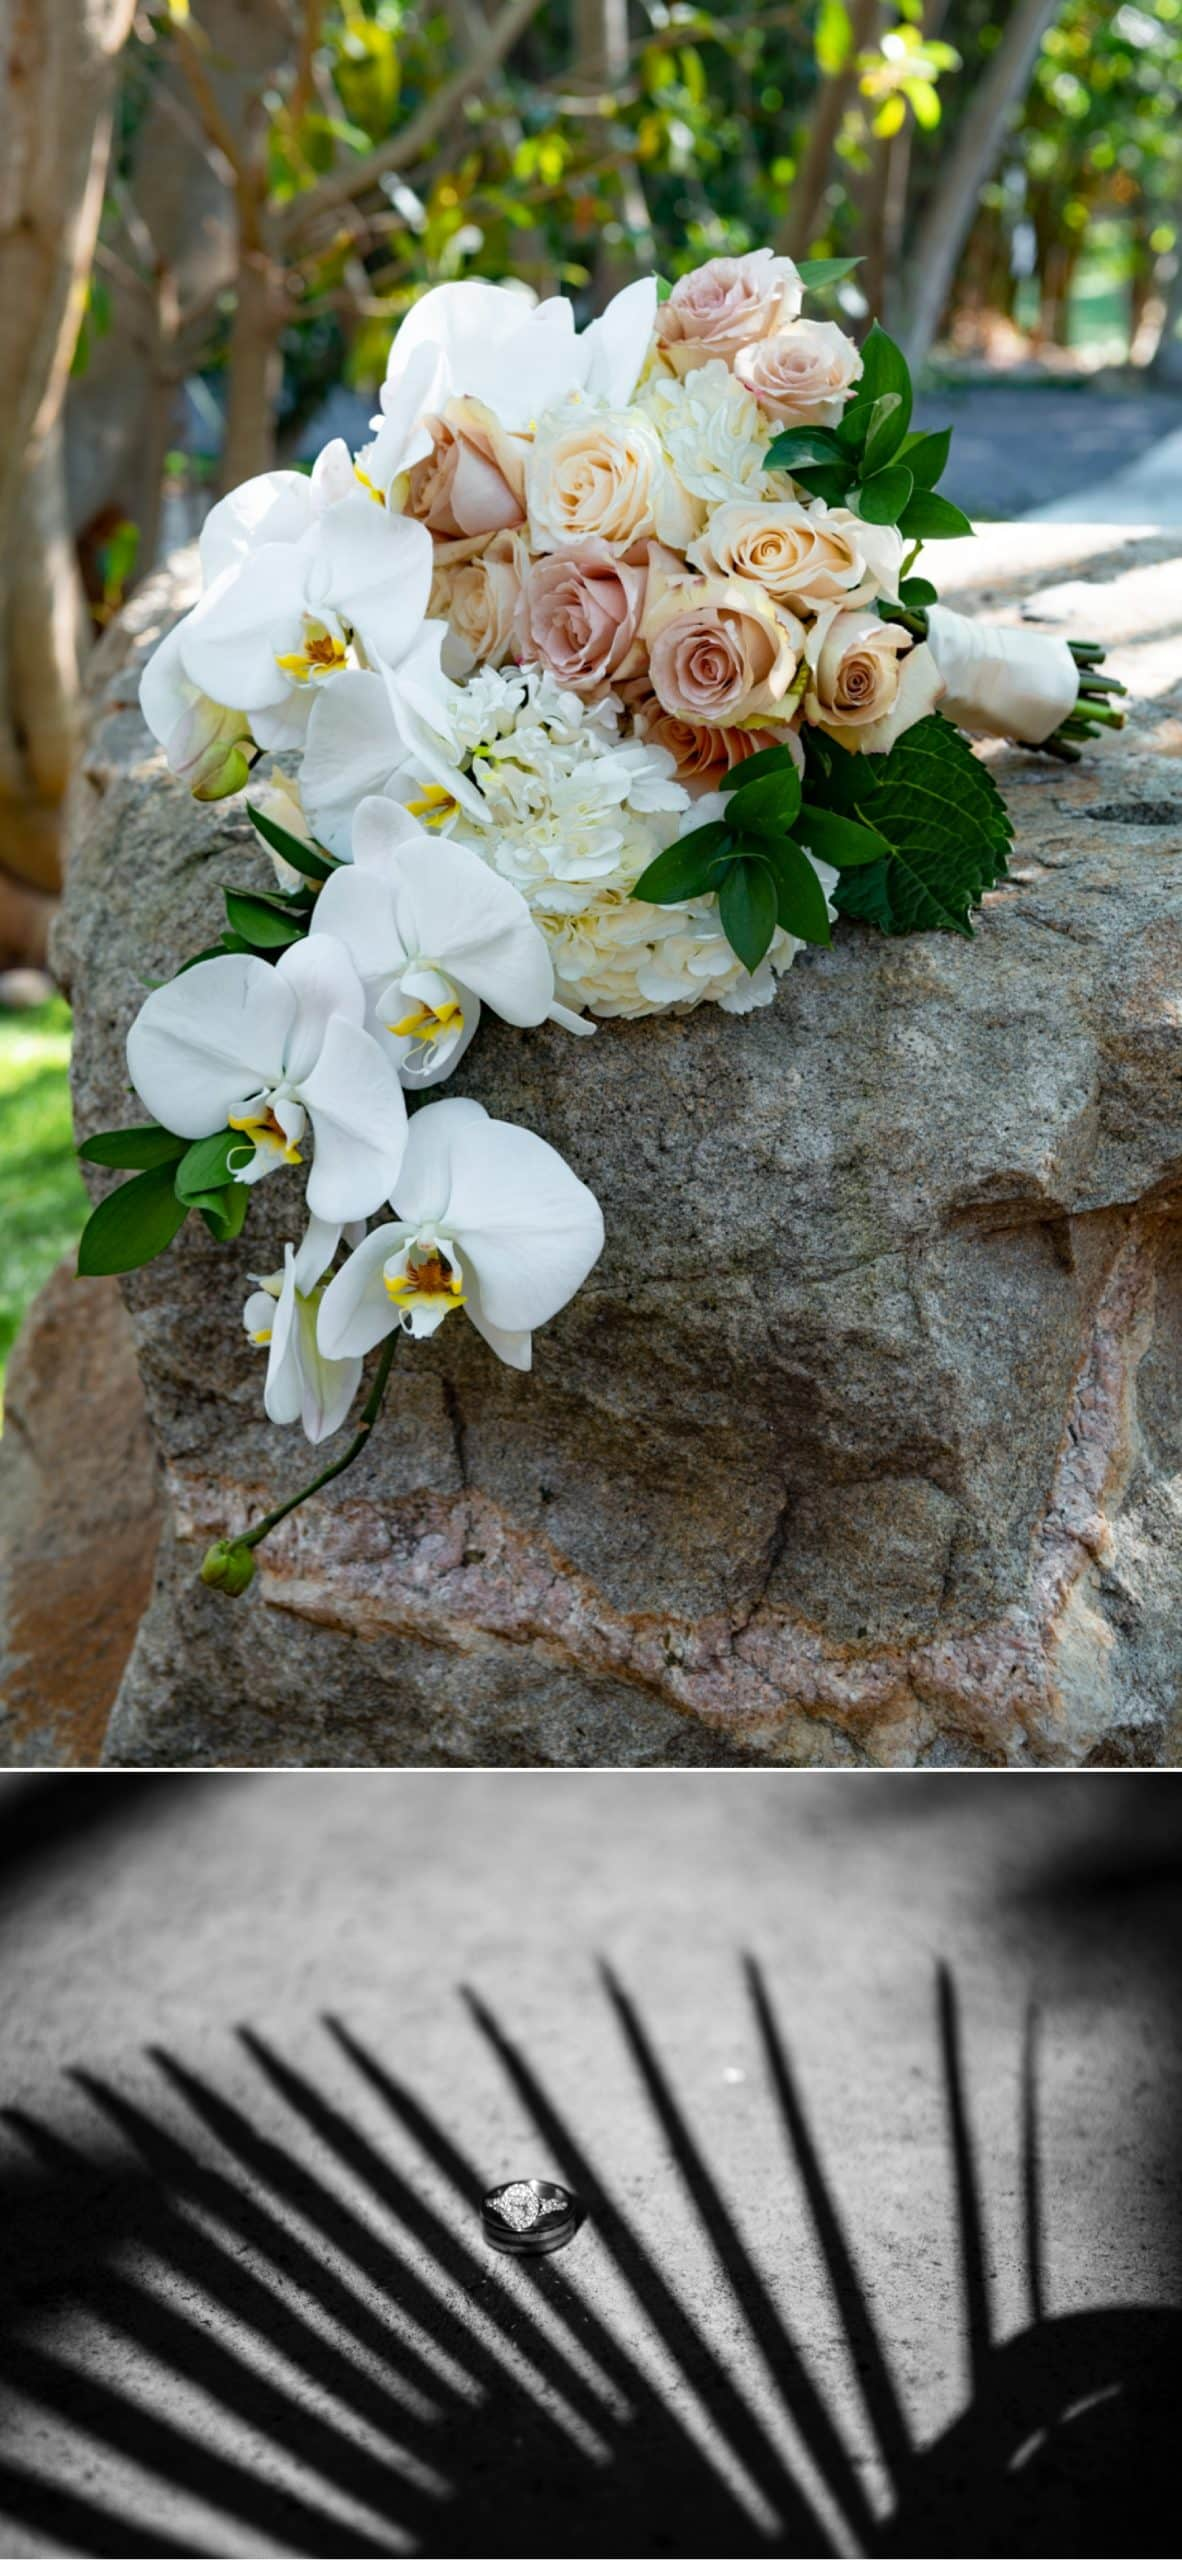 Bridal bouquet and wedding rings at Botanica